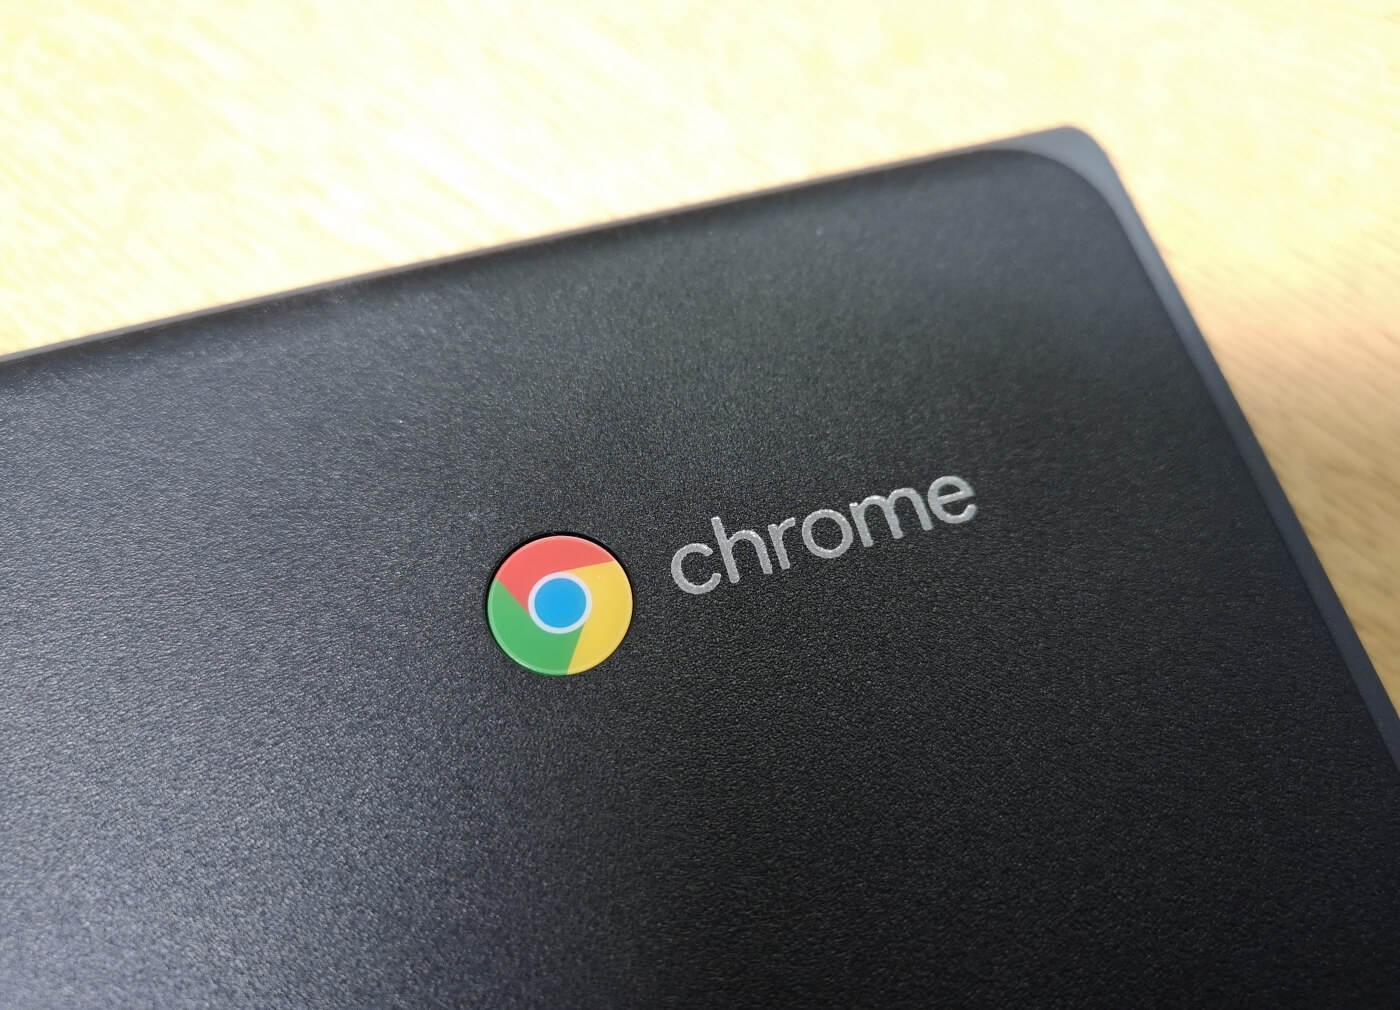 Google is working to bring Valve's Steam to Chromebooks